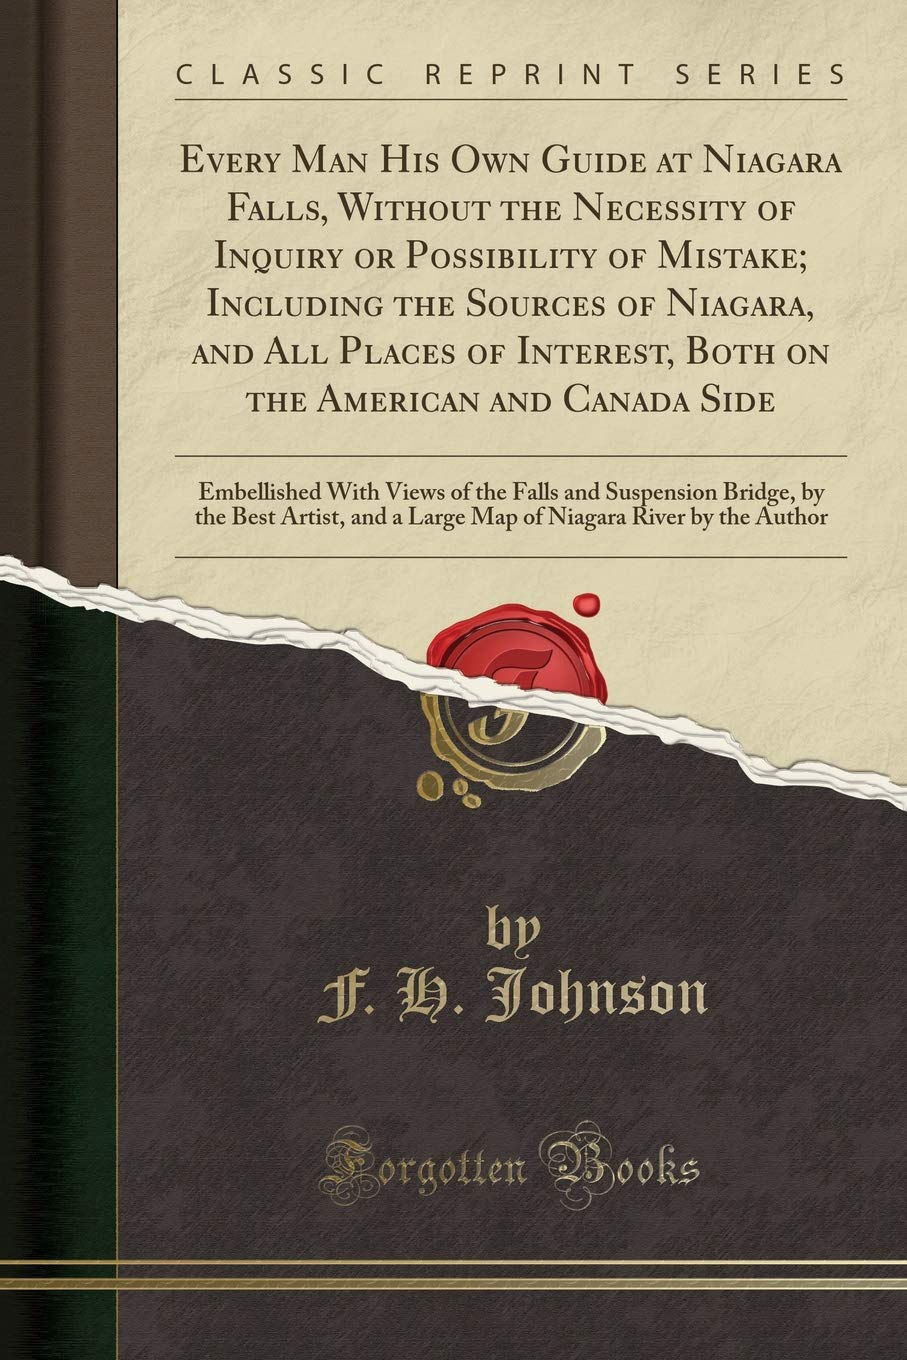 Every Man His Own Guide at Niagara Falls, Without the Necessity of Inquiry or Possibility of Mistake; Including the Sources of Niagara, and All Places ... With Views of the Falls and Suspension Br PDF